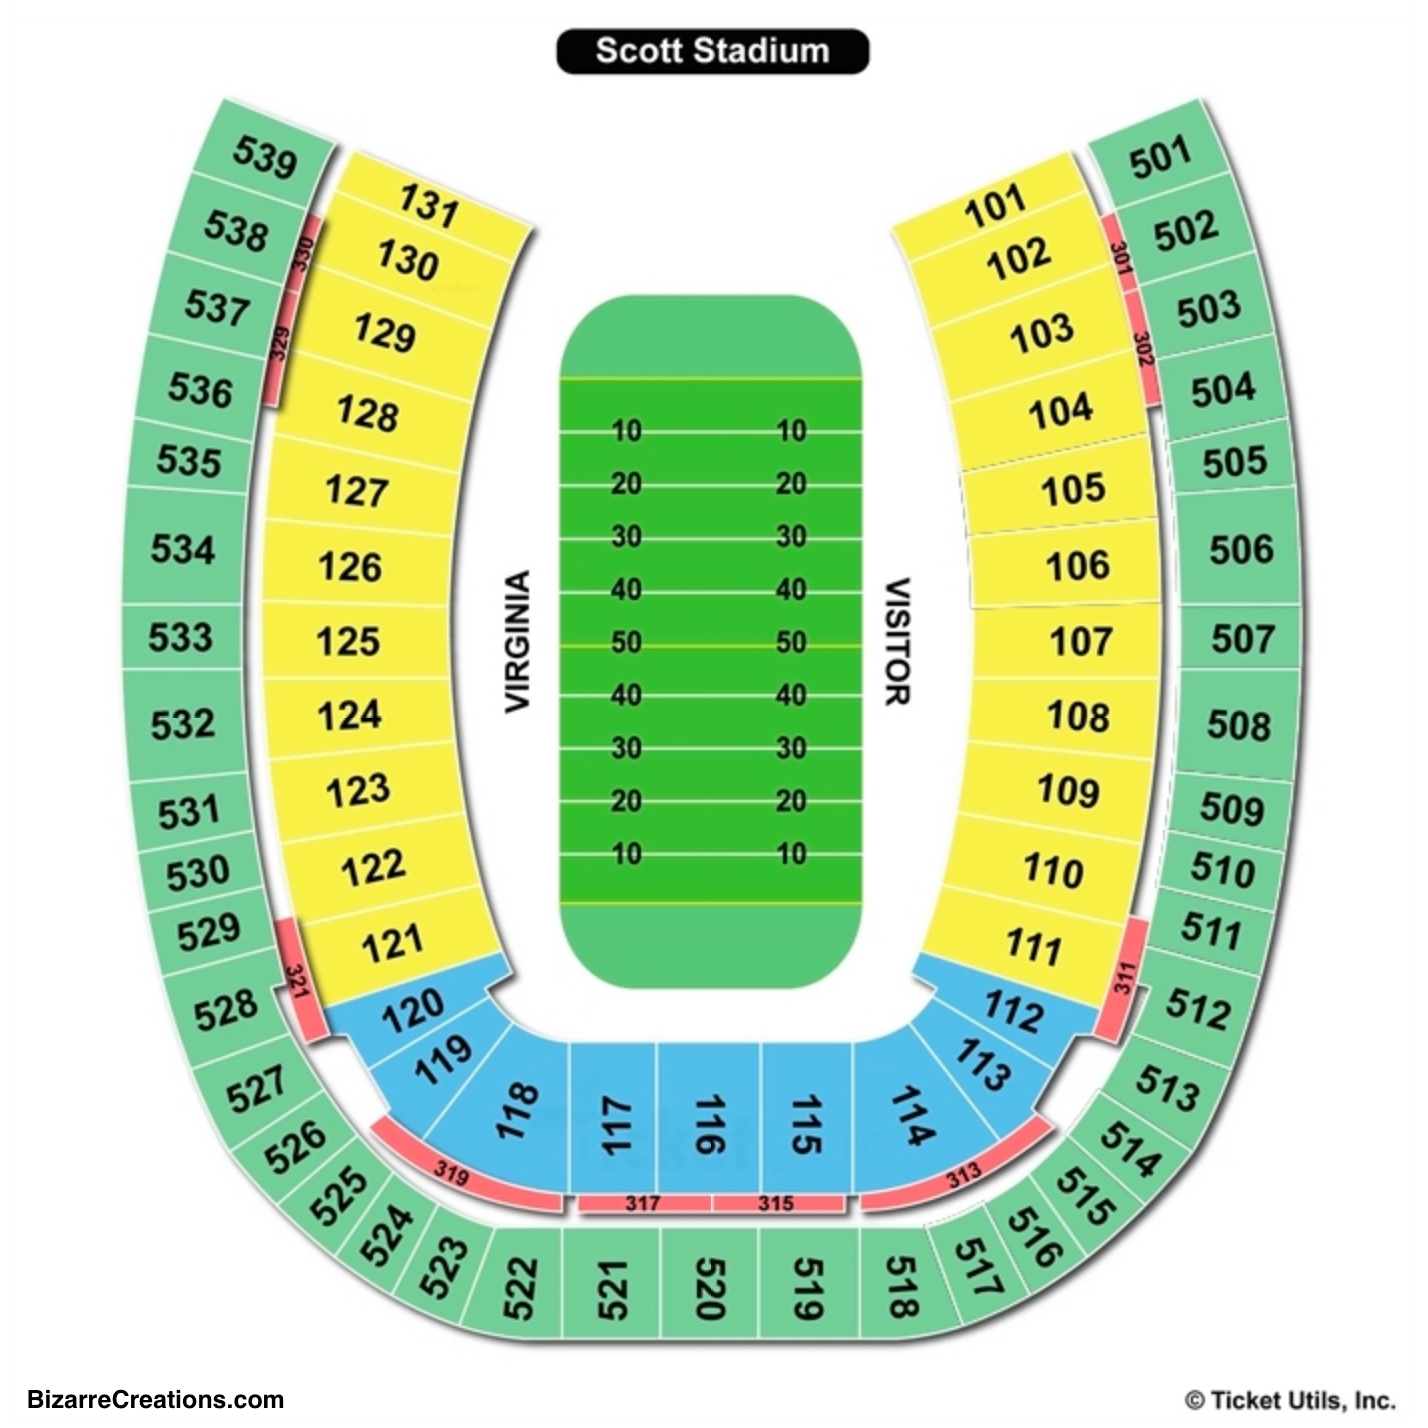 Scott Stadium Seating Chart Football